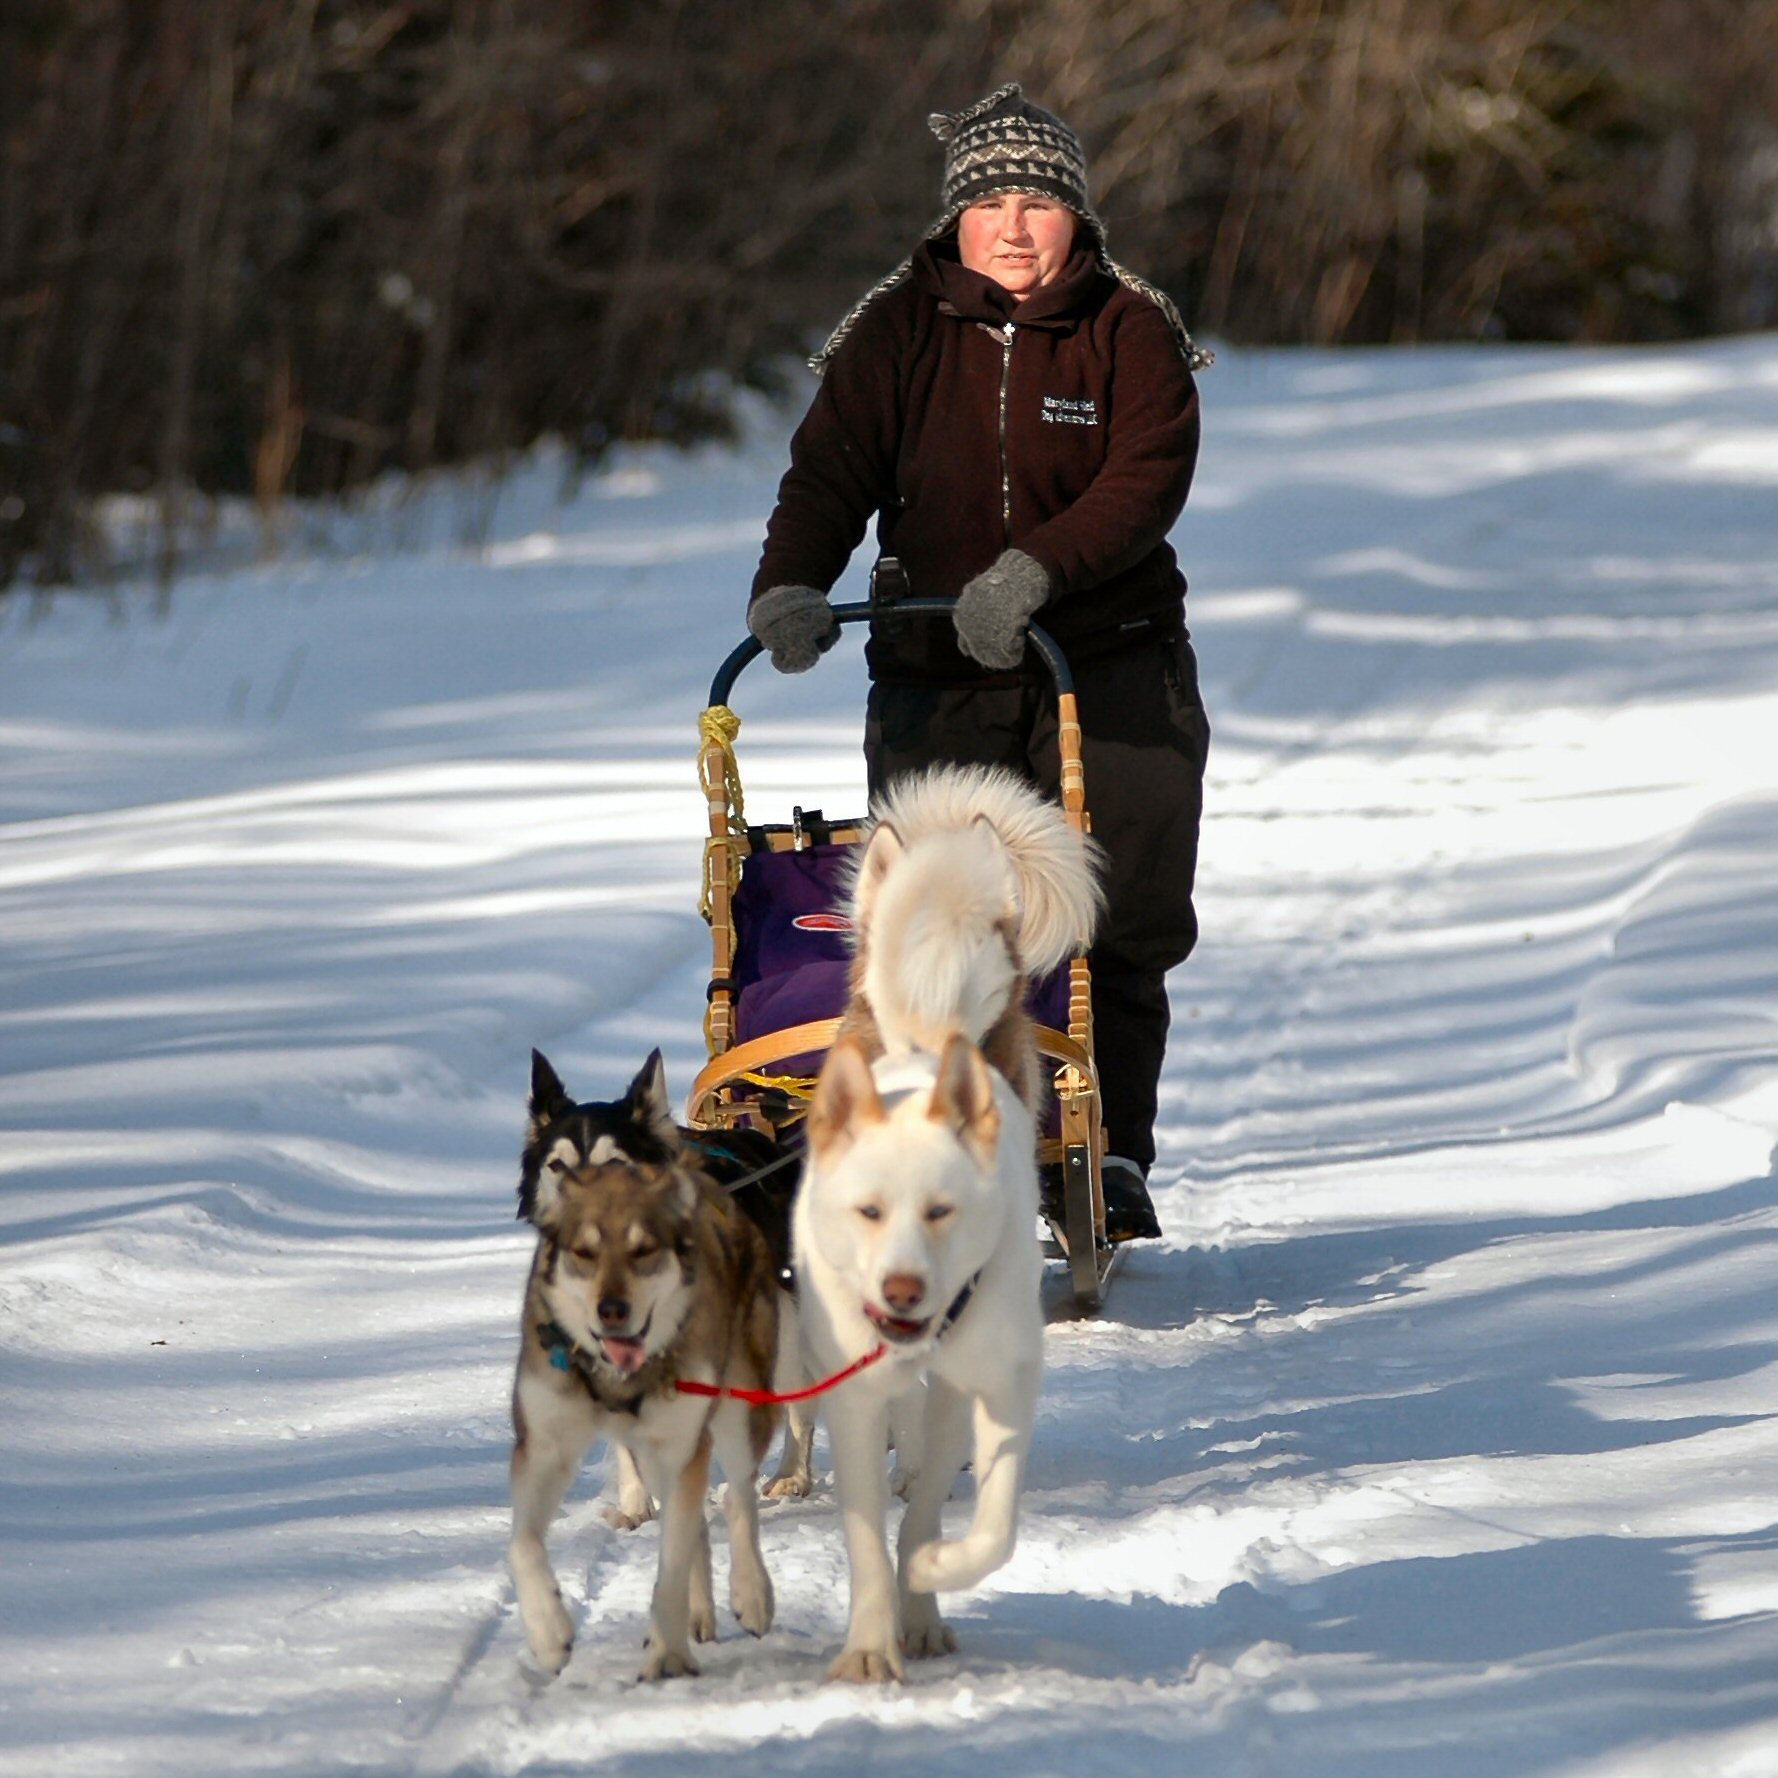 Sled dog racing in Brownville, Maine